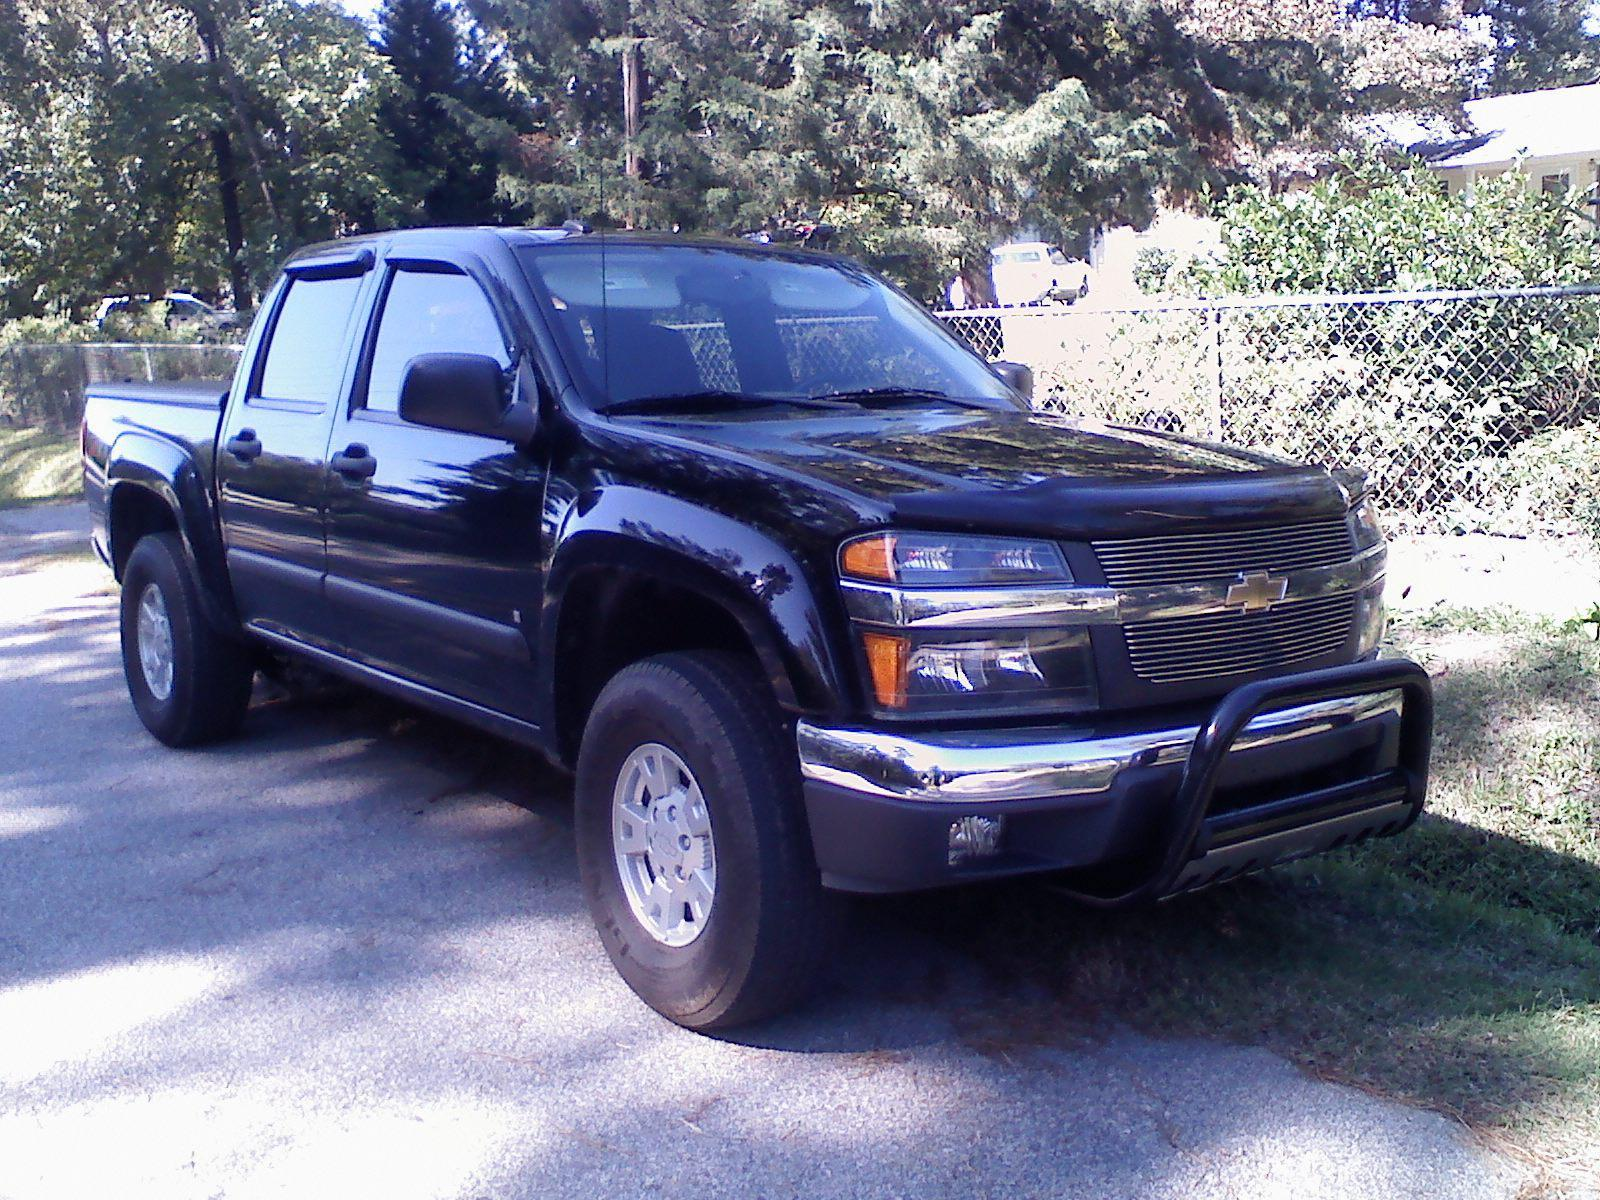 trob1991 2008 Chevrolet Colorado Regular Cab Specs, Photos ...